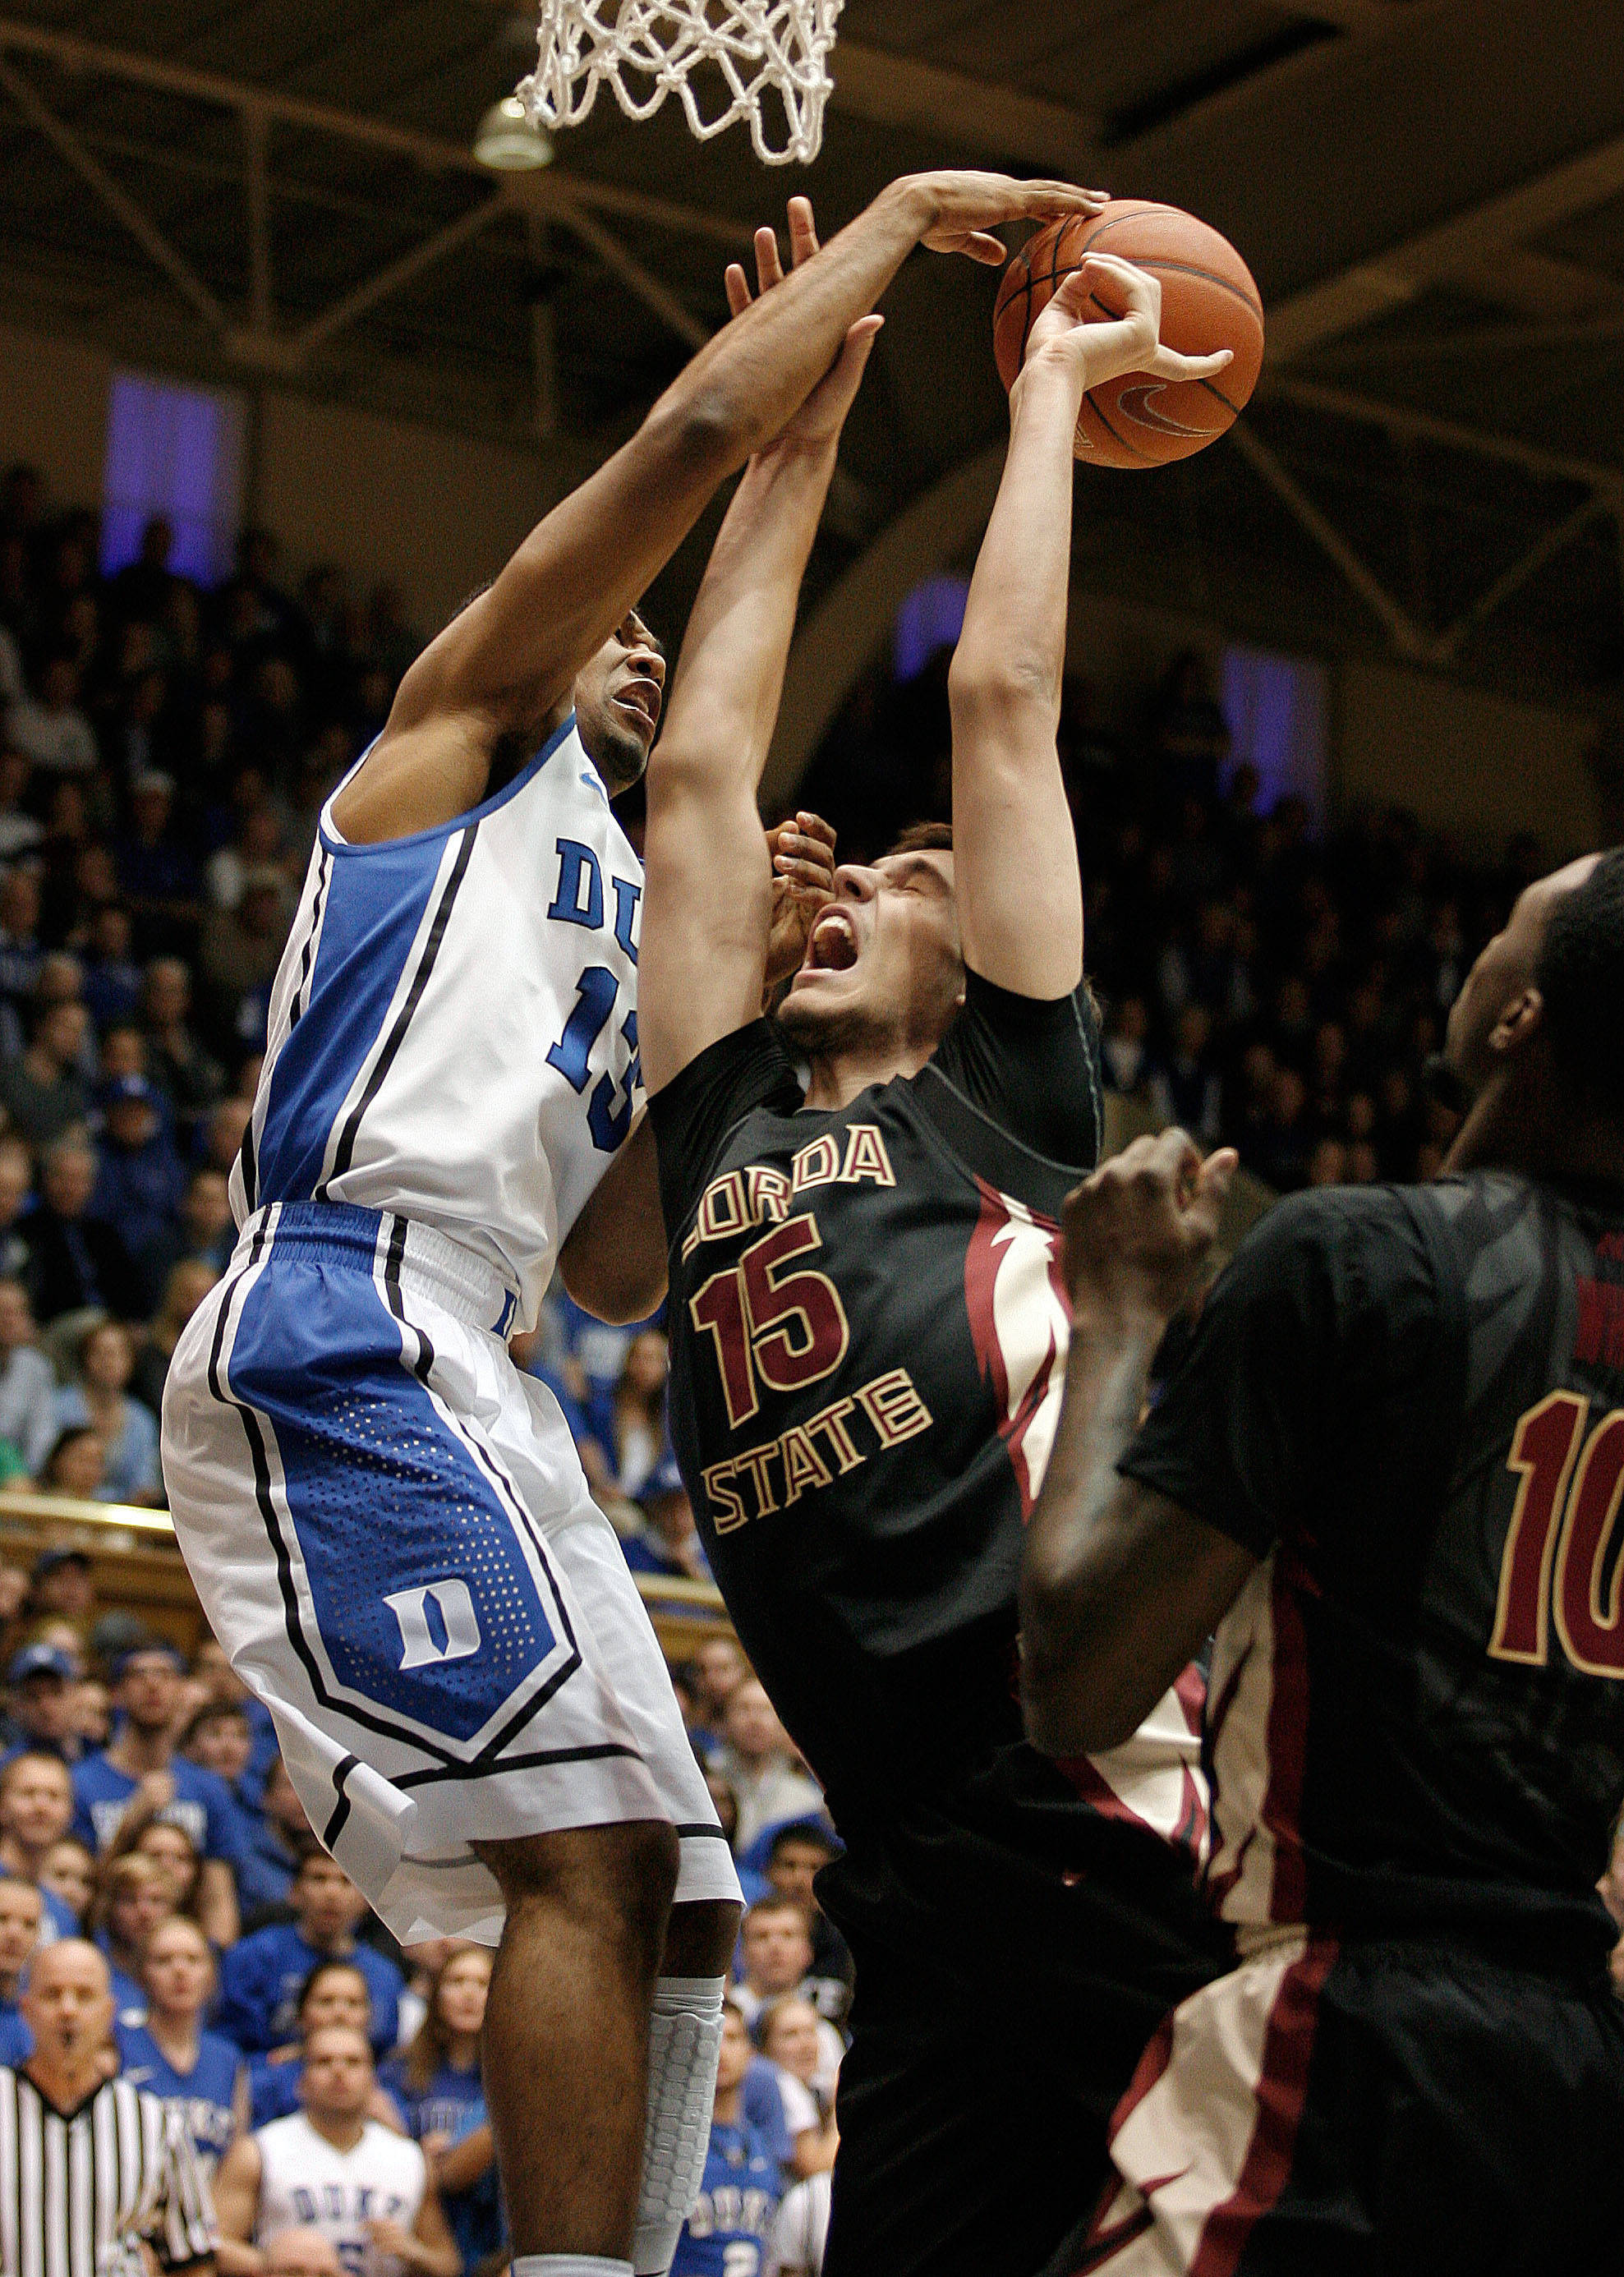 Jan 25, 2014; Durham, NC, USA; Duke Blue Devils guard Matt Jones (13) defends as Seminoles center Boris Bojanovsky (15) shoots the ball. Mark Dolejs-USA TODAY Sports